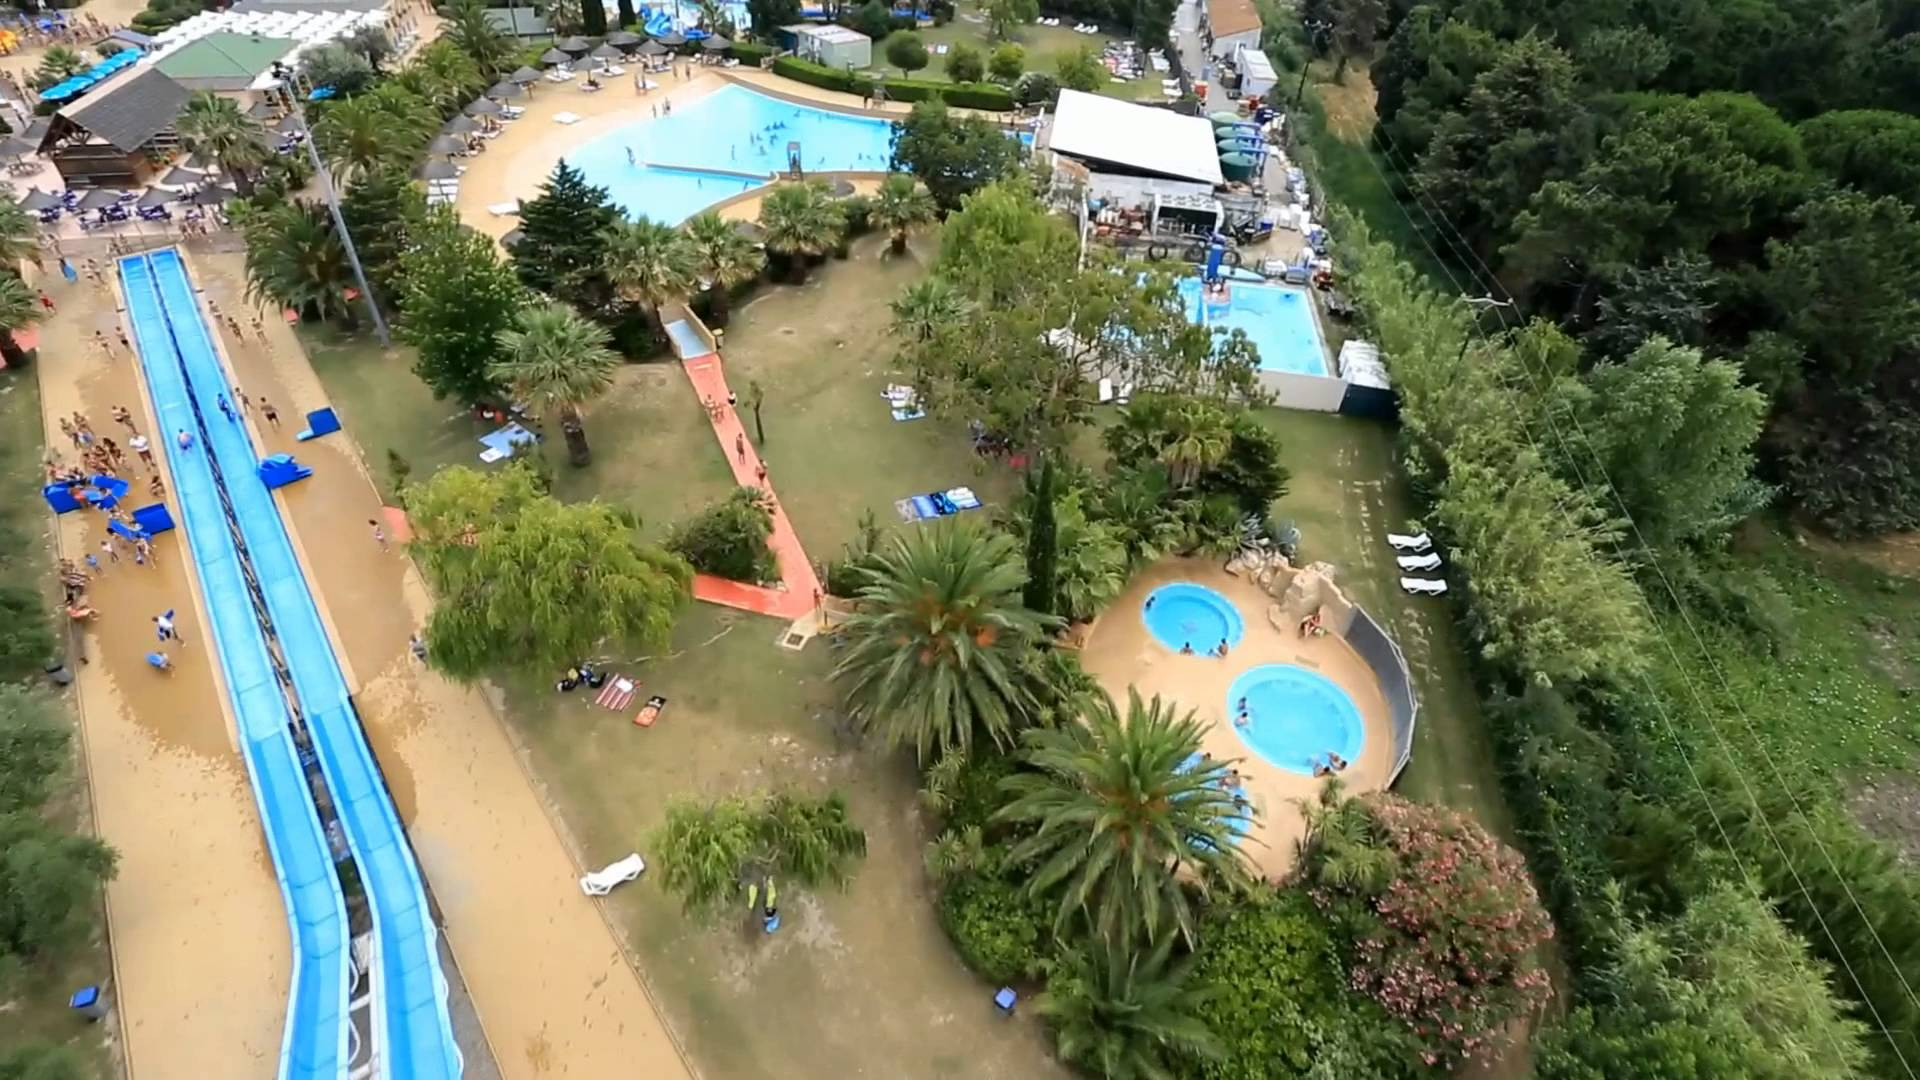 Aqualand Saint Cyprien photo de youtube.com